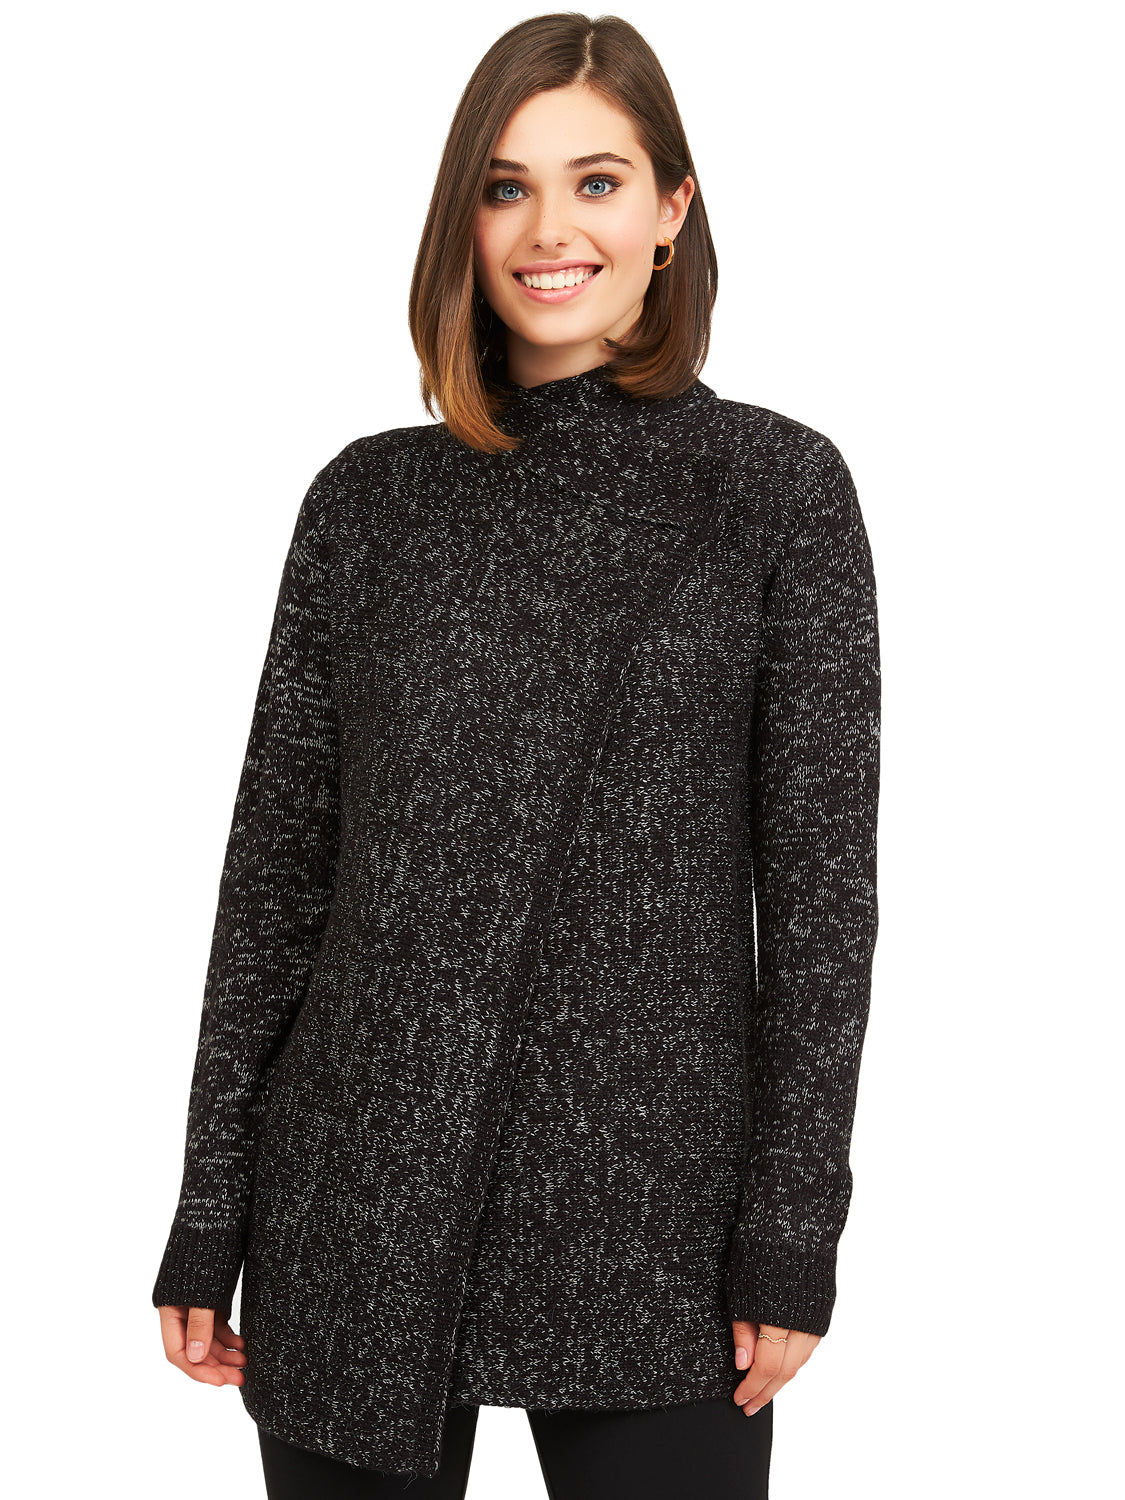 X-Over Knit Sweater Duster